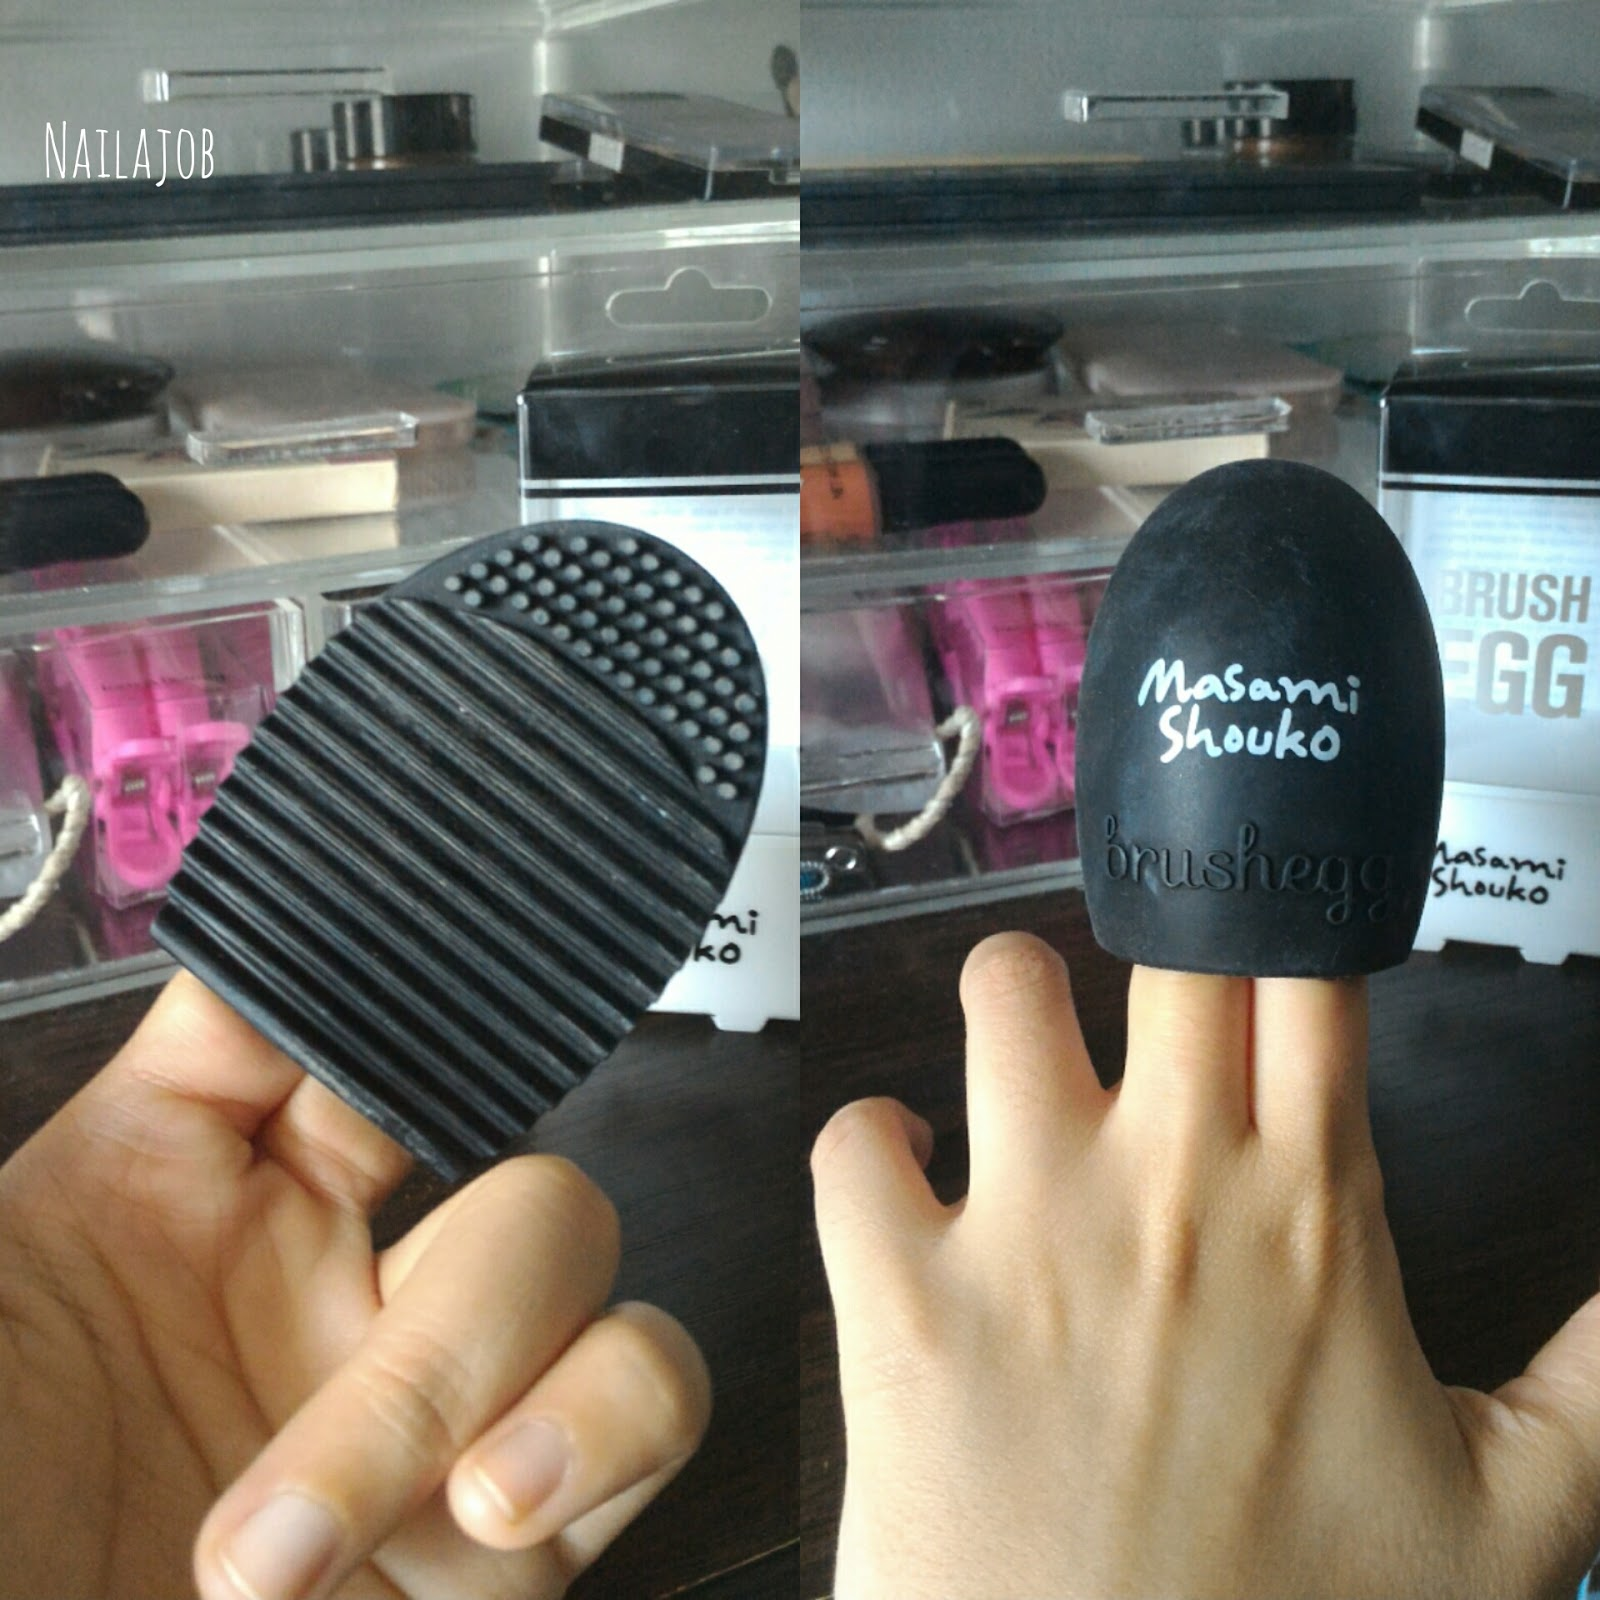 Masami Shouko Brush Egg Review Beauty Dgrad Deep Cleansing It Reminds Me With Finger Puppets